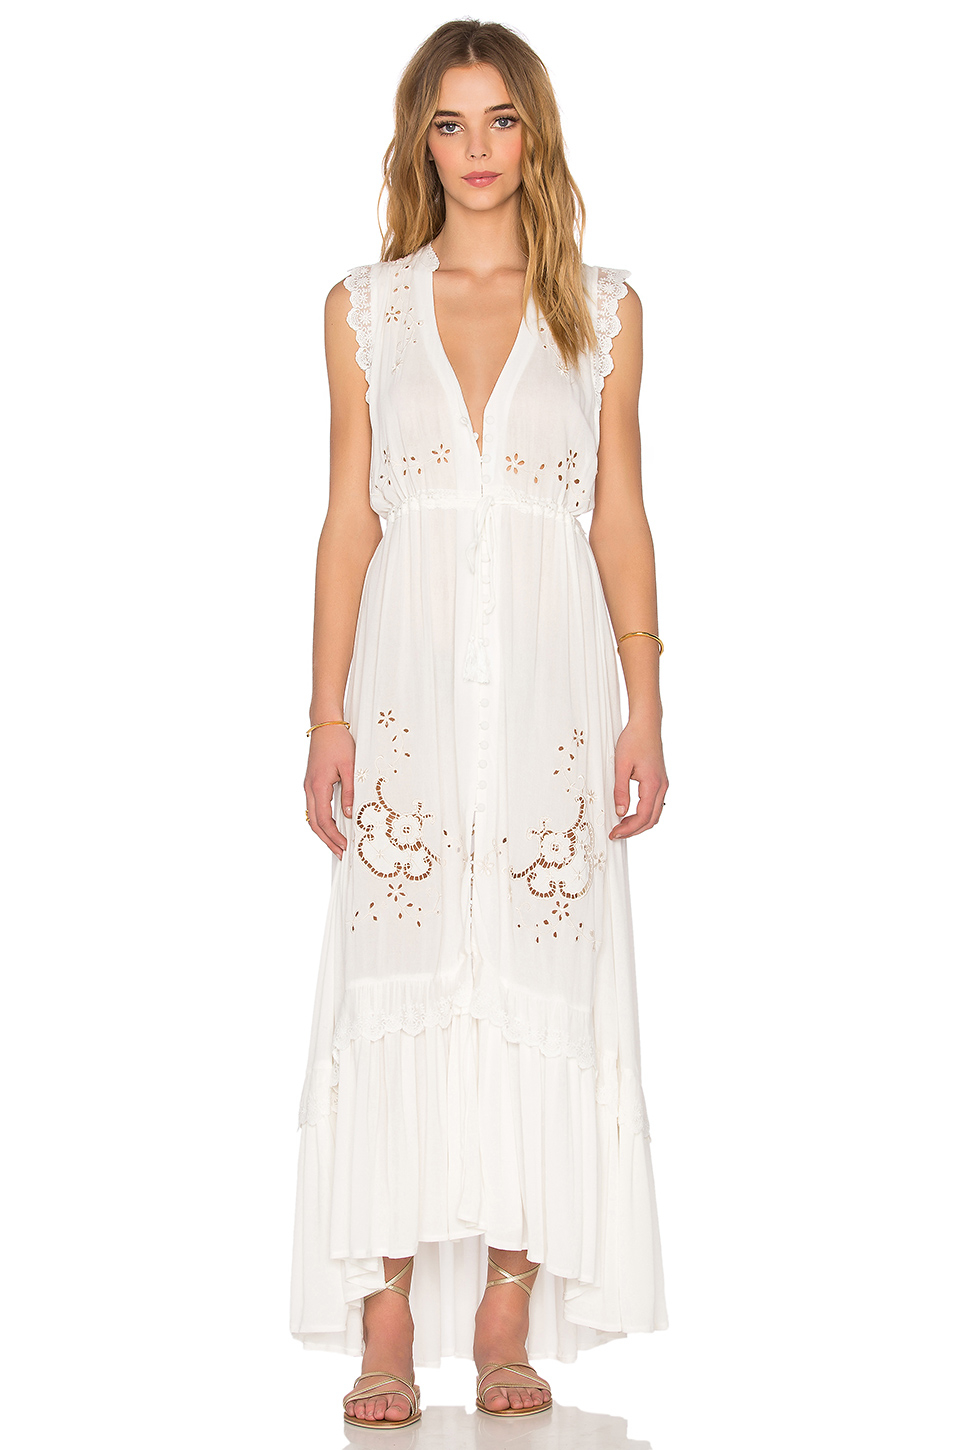 Lyst - Spell & The Gypsy Collective Isla Bonita Duster Dress in White